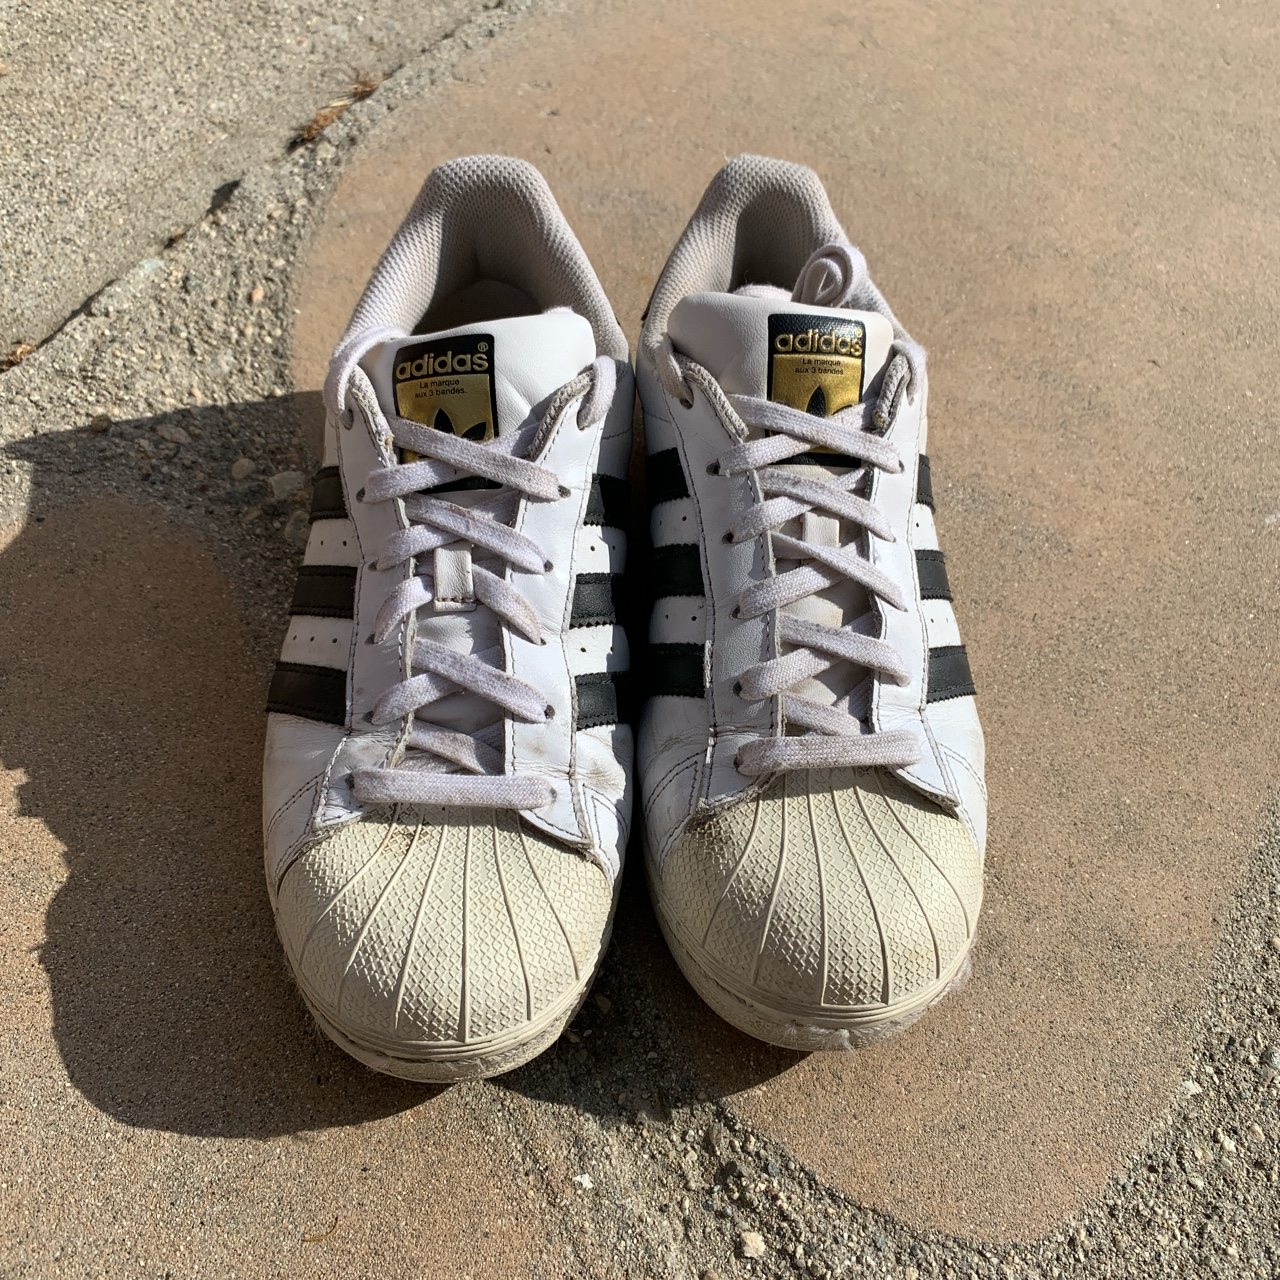 Product Image 1 - Adidas superstar sneakers  fair used condition.